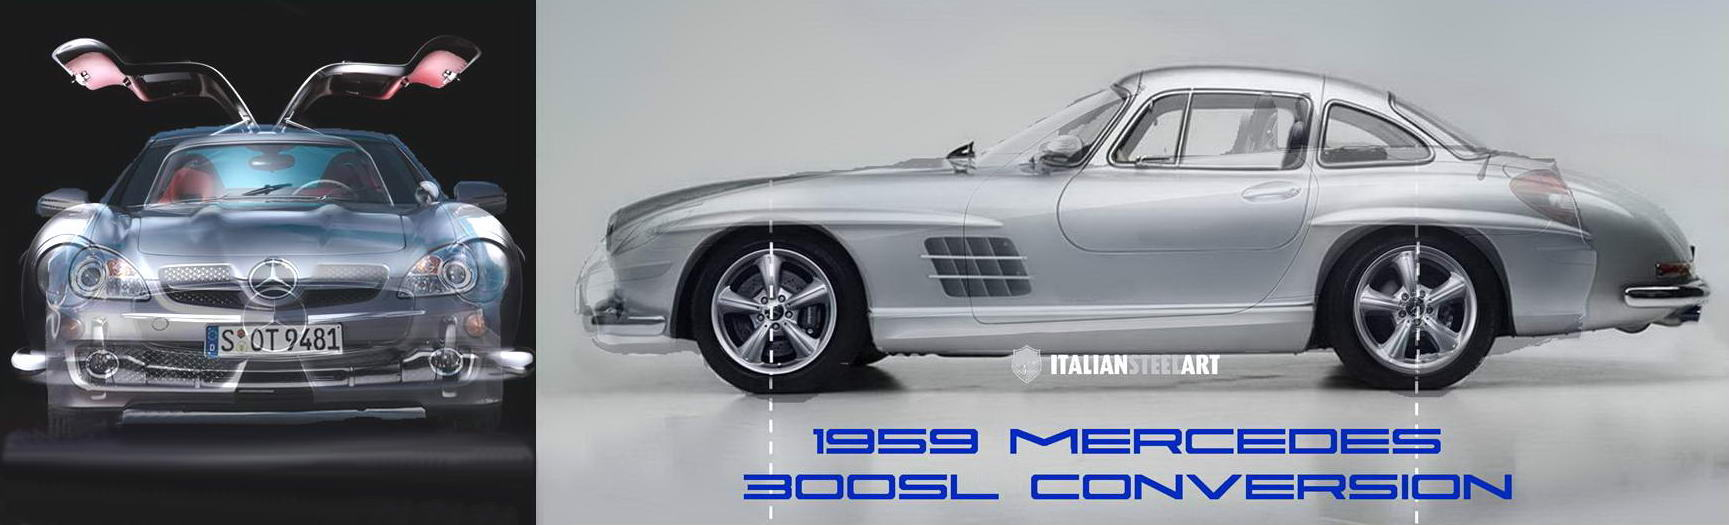 mercedes 300sl conversion banner